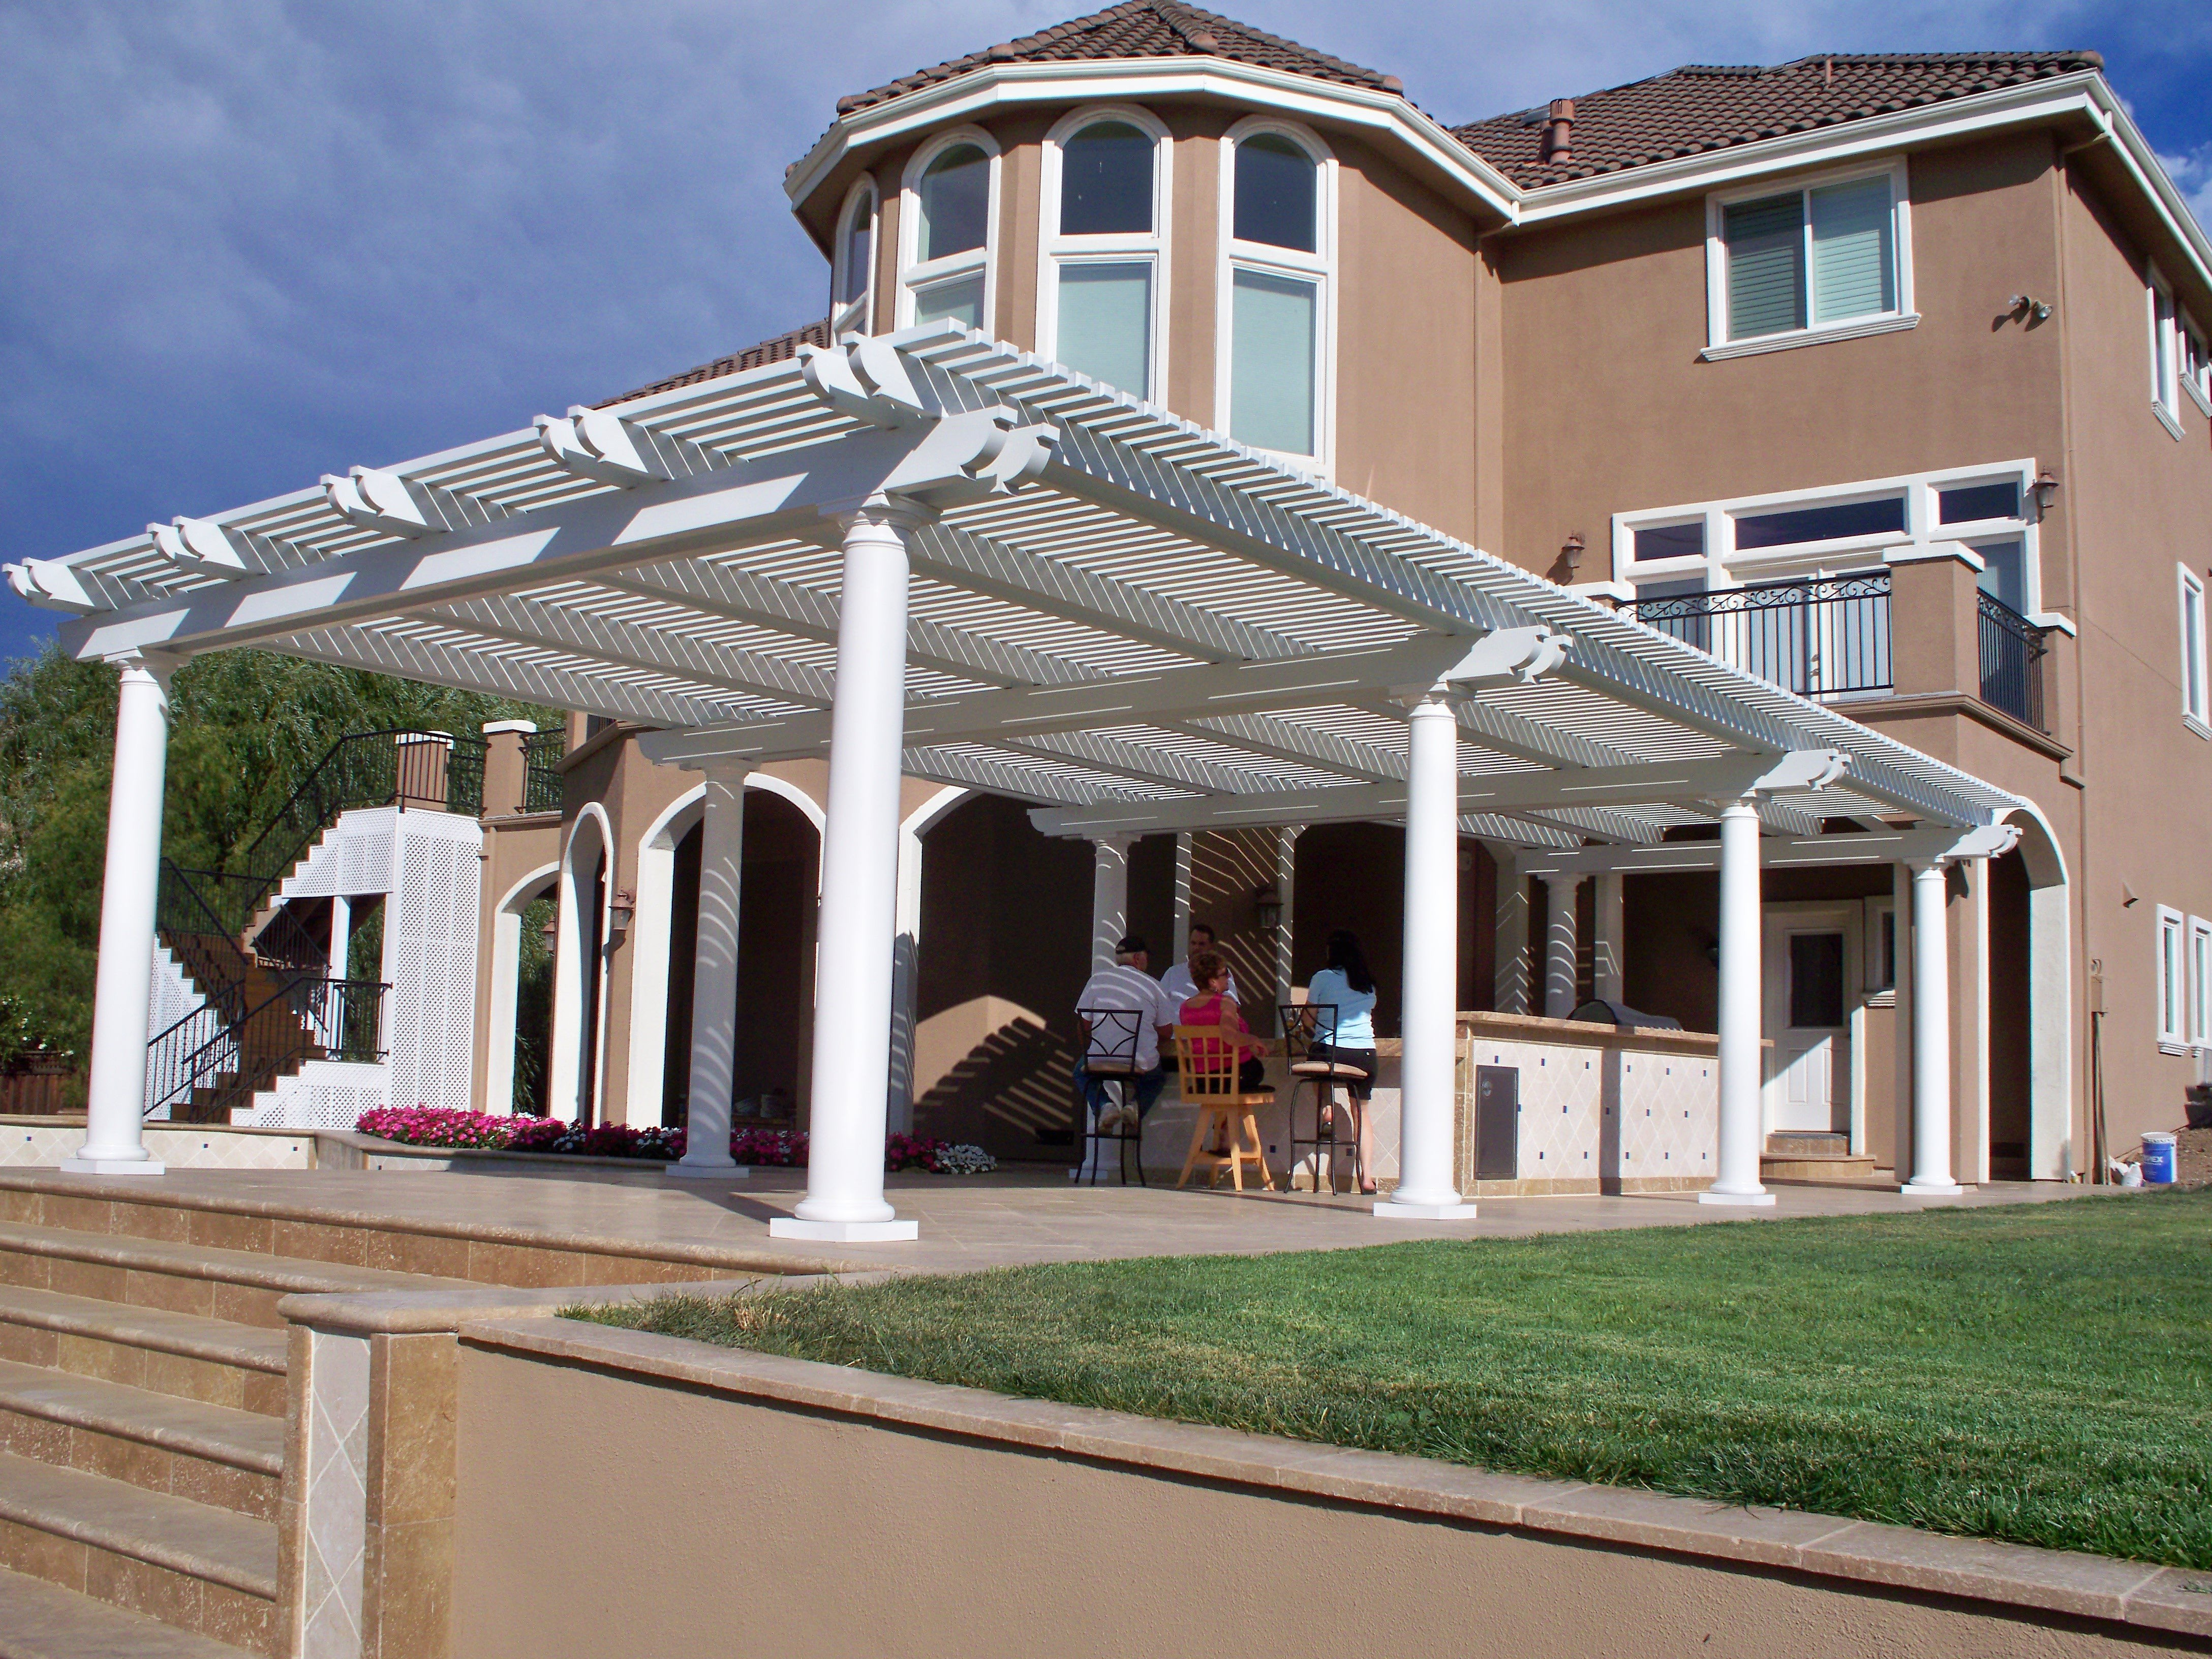 Of The Lattice Tubes. Lattice Patio Covers Provide A Comfortable  Environment While Moderating The Seasons Temperatures.